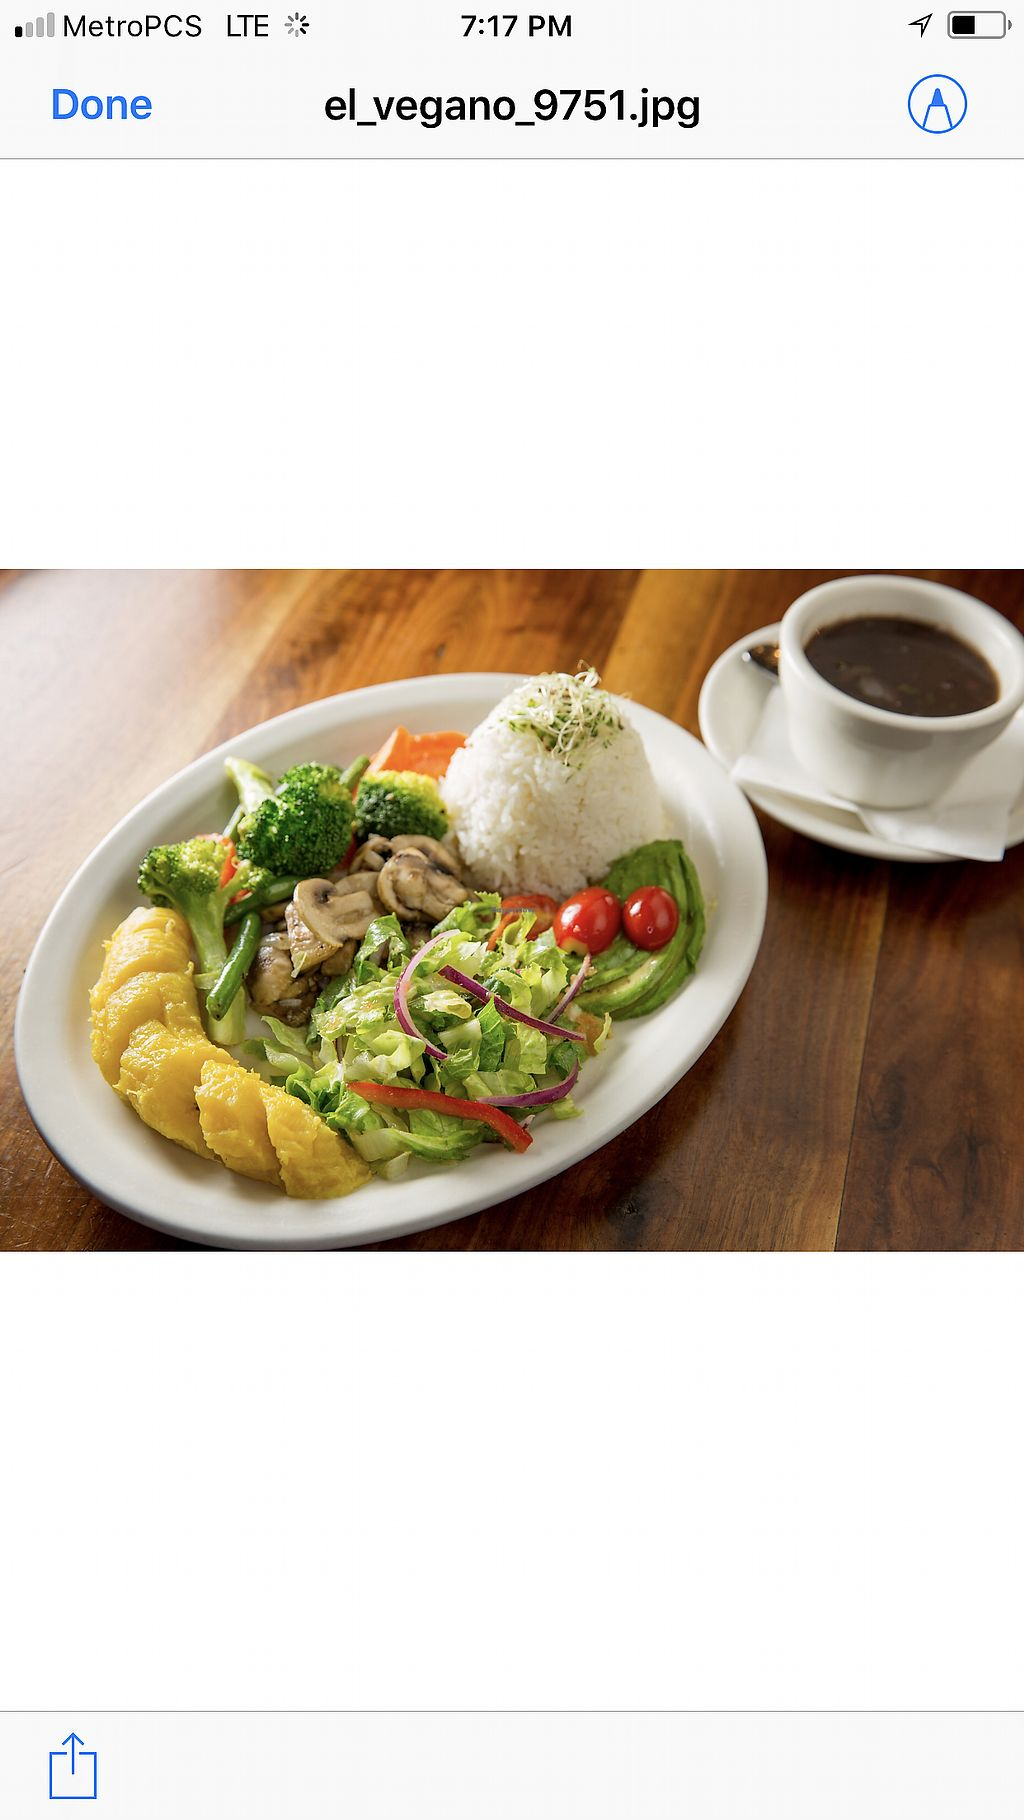 "Photo of Puerto Viejo  by <a href=""/members/profile/MaritzaAbreu"">MaritzaAbreu</a> <br/>El Vegano, Dominican Macro Bowl with avocado, sautéed mushrooms, sautéed vegetables, boiled sweet plantain, rice, beans and salad  <br/> February 21, 2018  - <a href='/contact/abuse/image/110488/361931'>Report</a>"